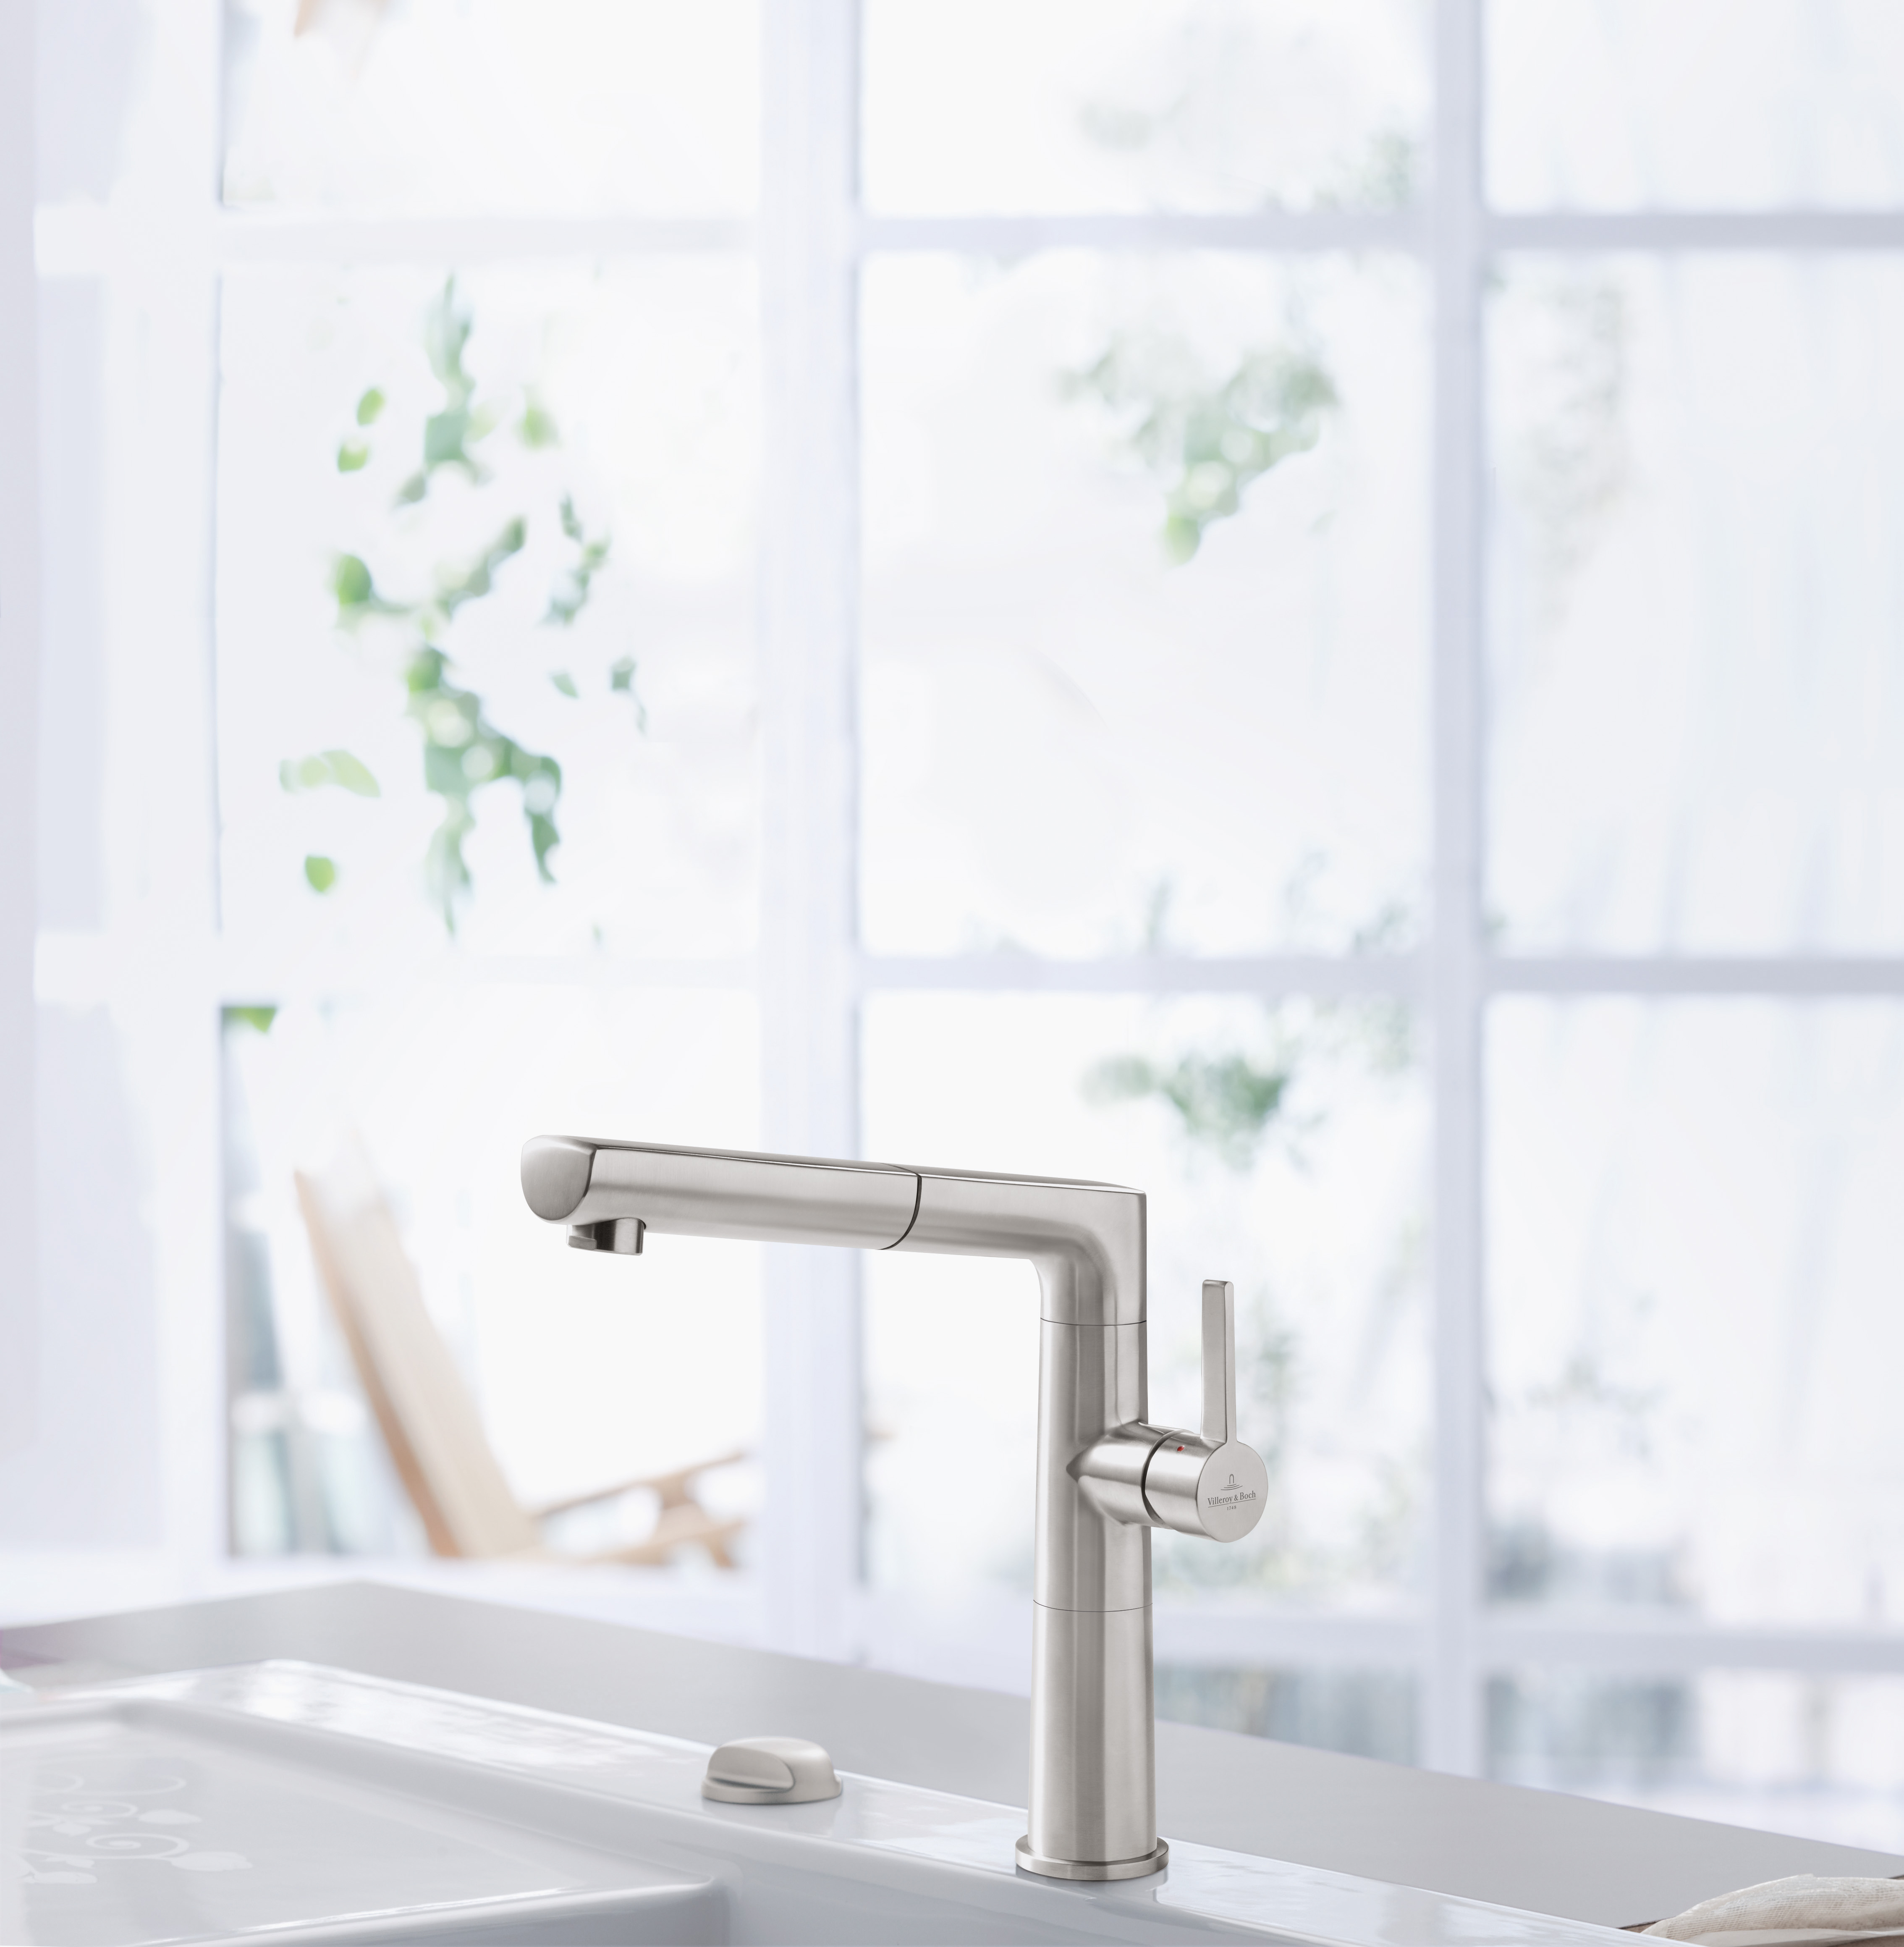 Sorano Sky Shower Tap fitting, Tap fittings, Kitchen tap fittings